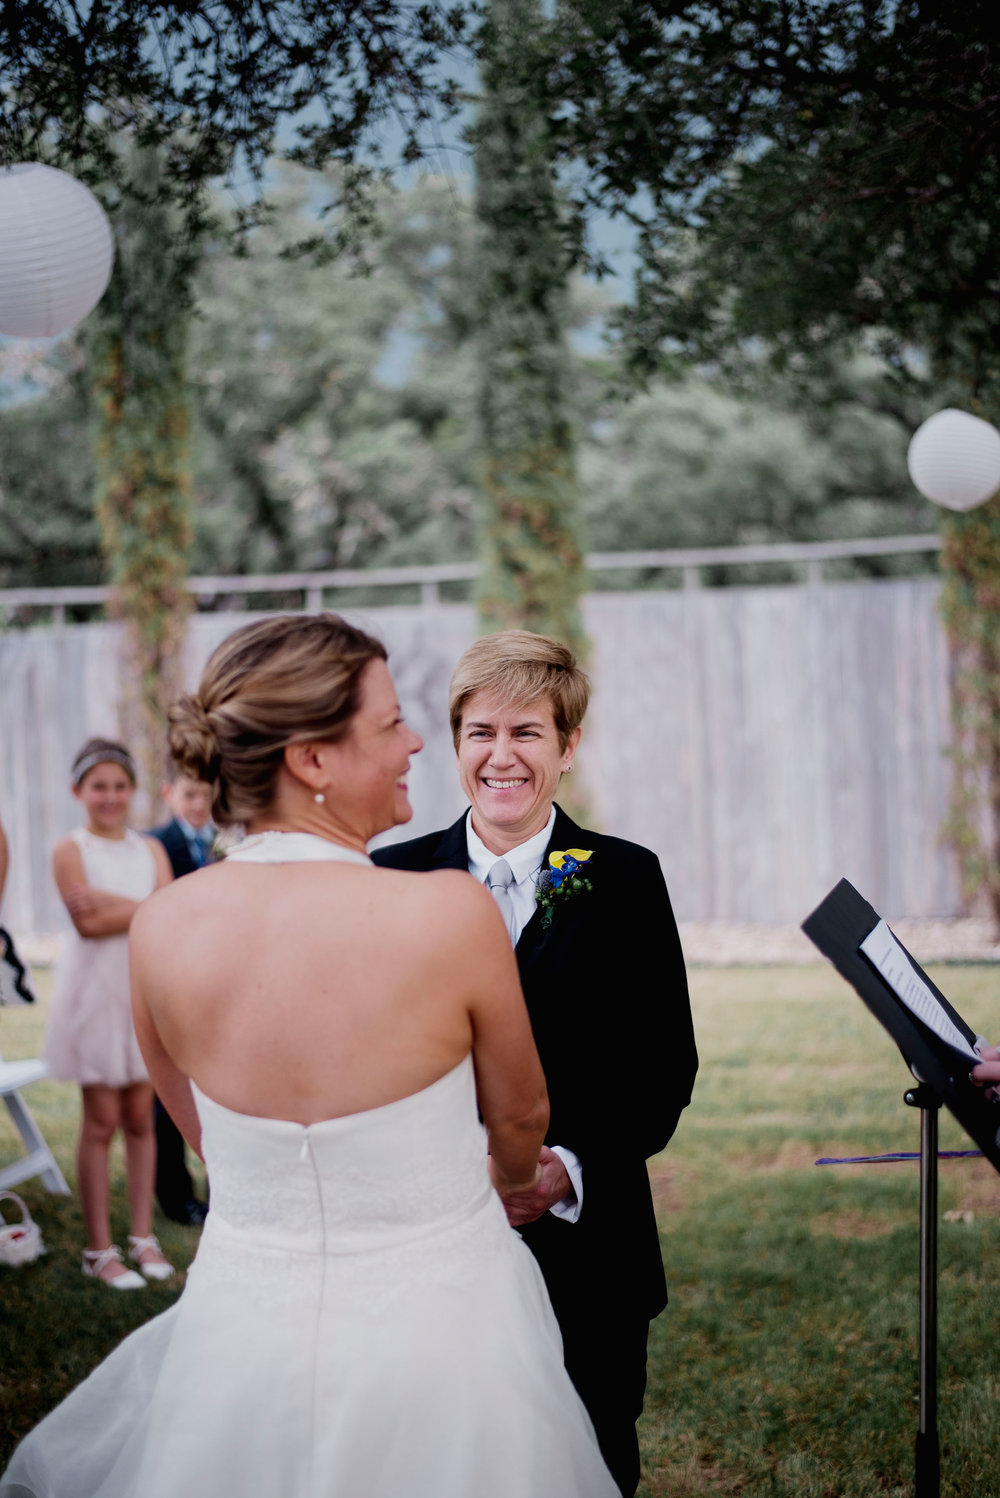 Austin Wedding Photographer Hacienda Del Lago LBGT Elegant029.jpg